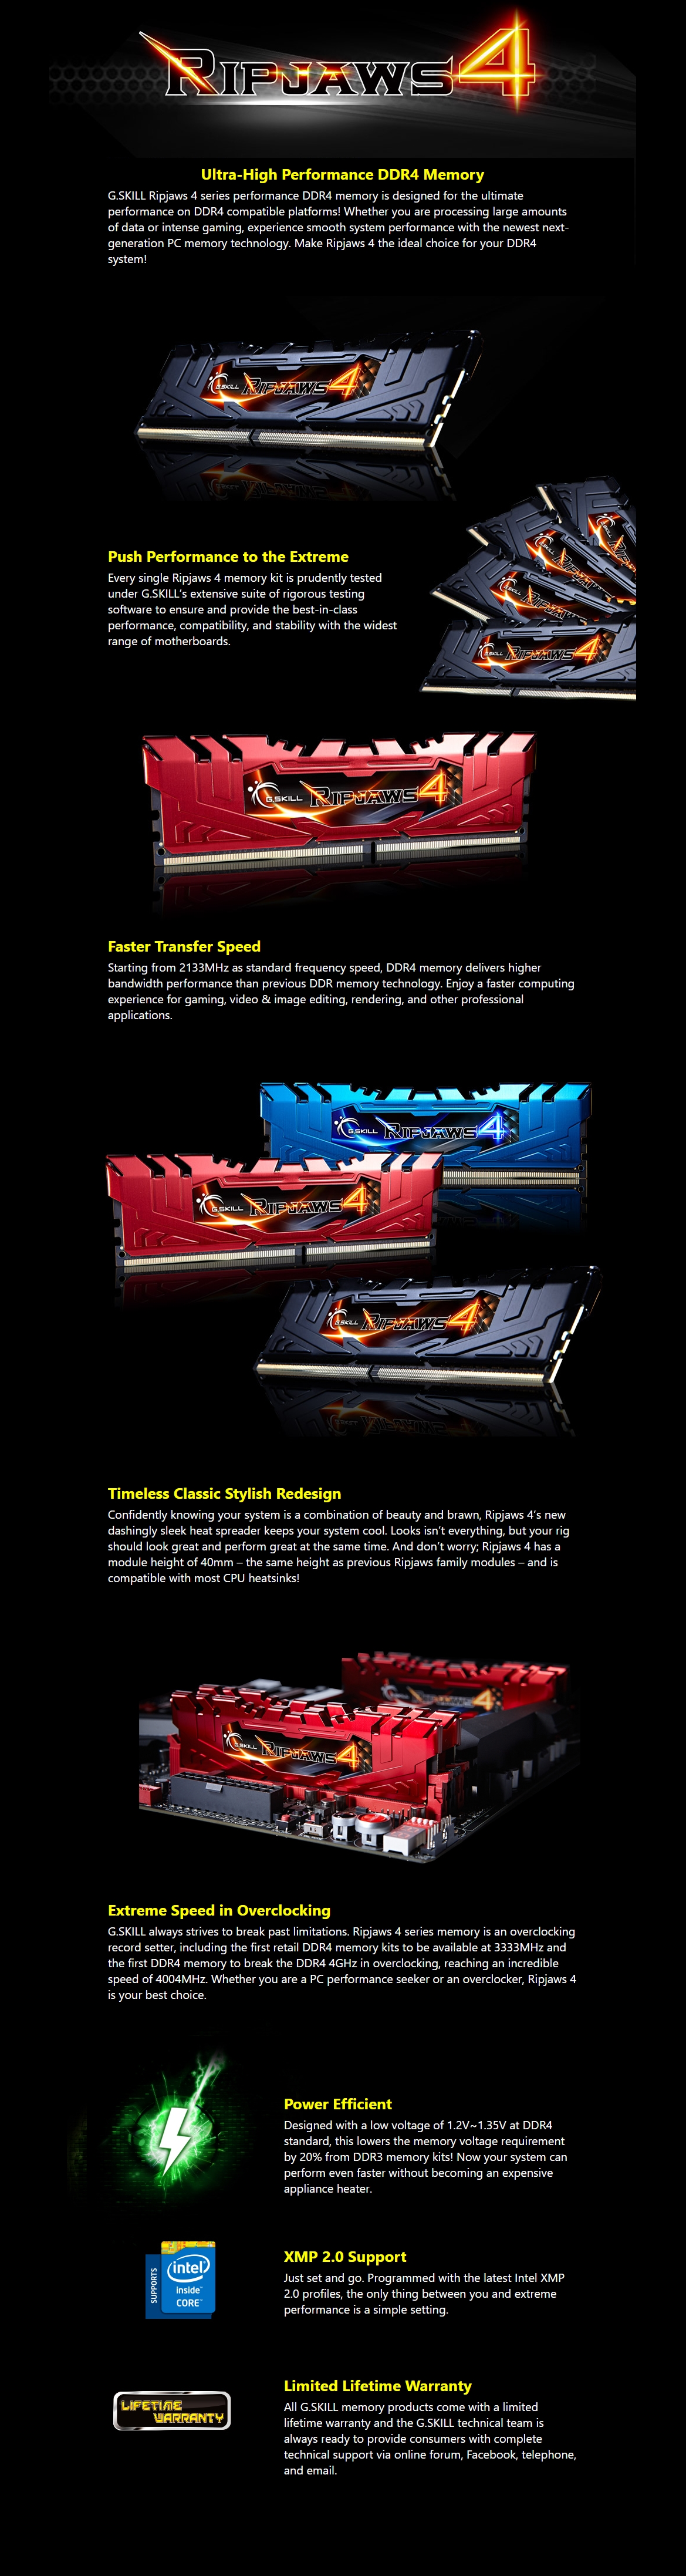 A large marketing image providing additional information about the product G.Skill 8GB Kit (2x4GB) DDR4 Ripjaws 4 Red C15 2400MHz - Additional alt info not provided